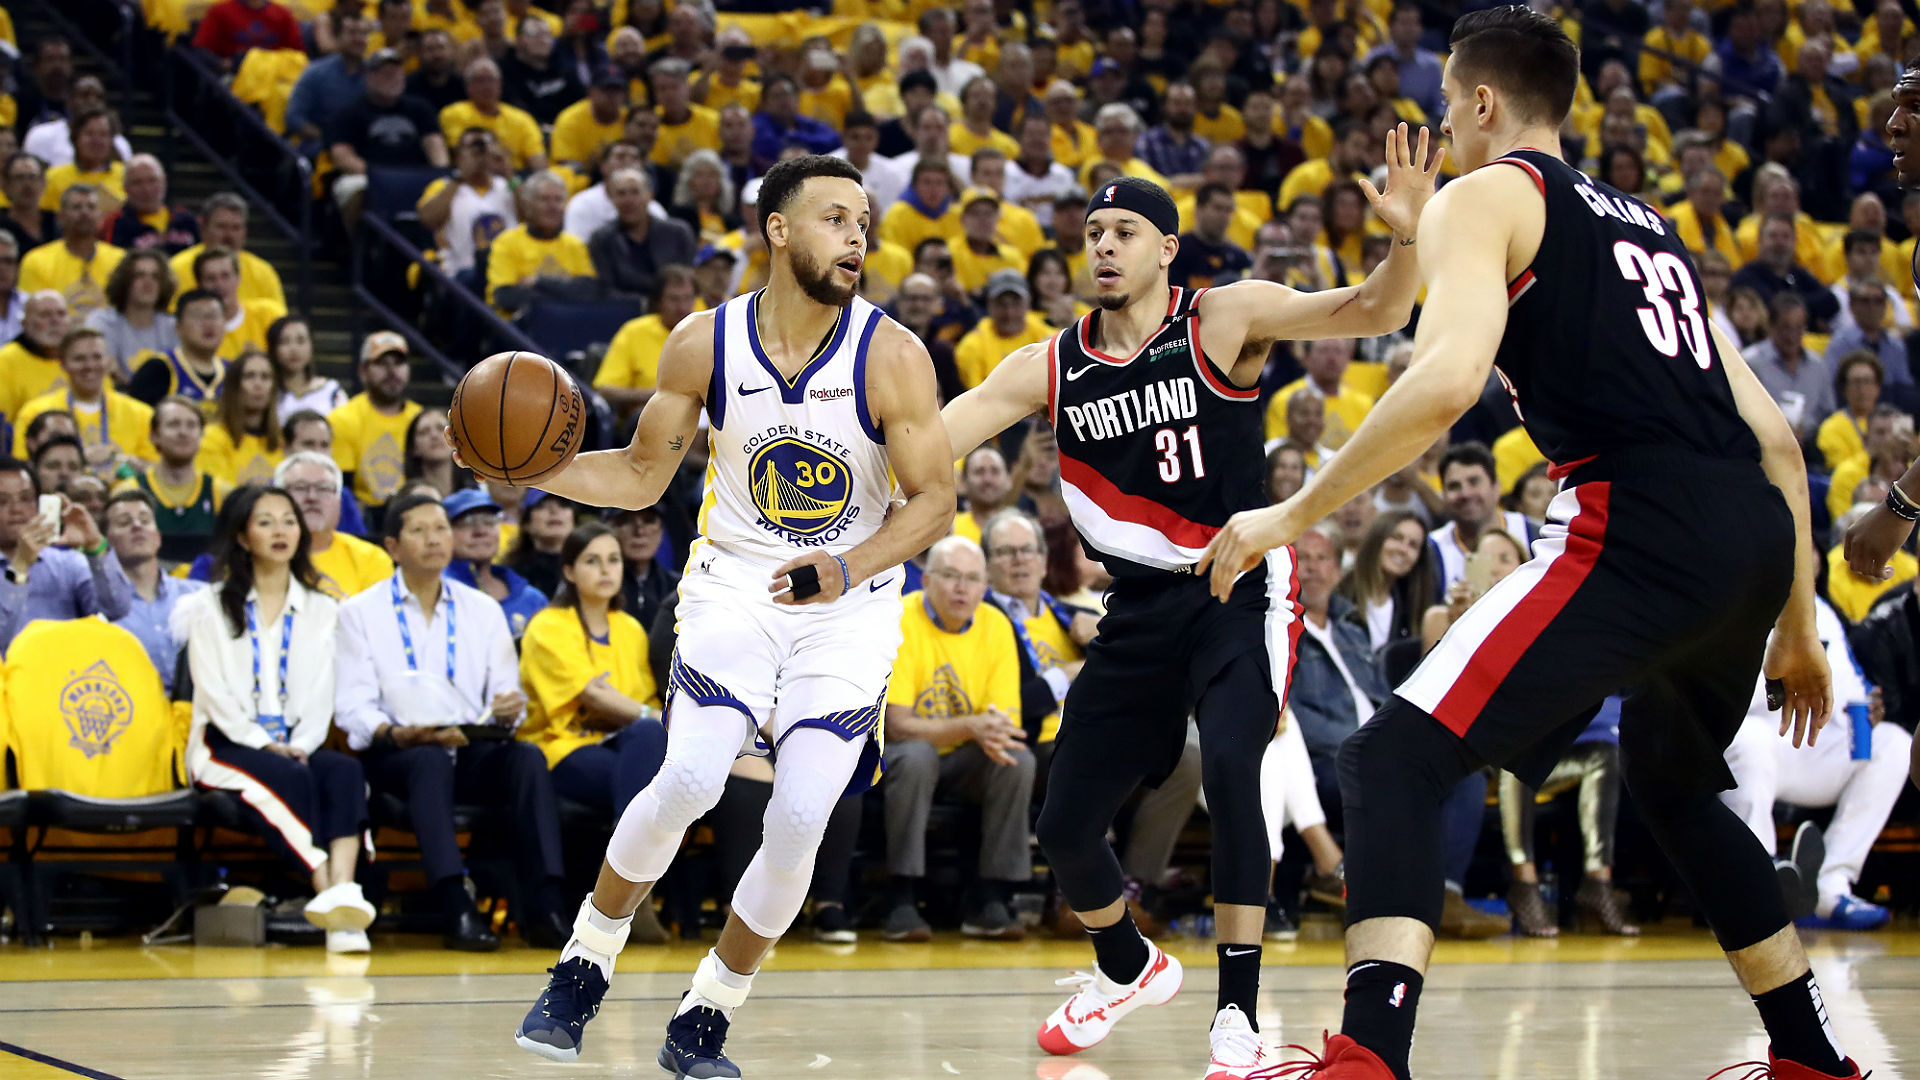 Portland Trail Blazers coach Terry Stotts will look at different ways for his team to defend Stephen Curry.